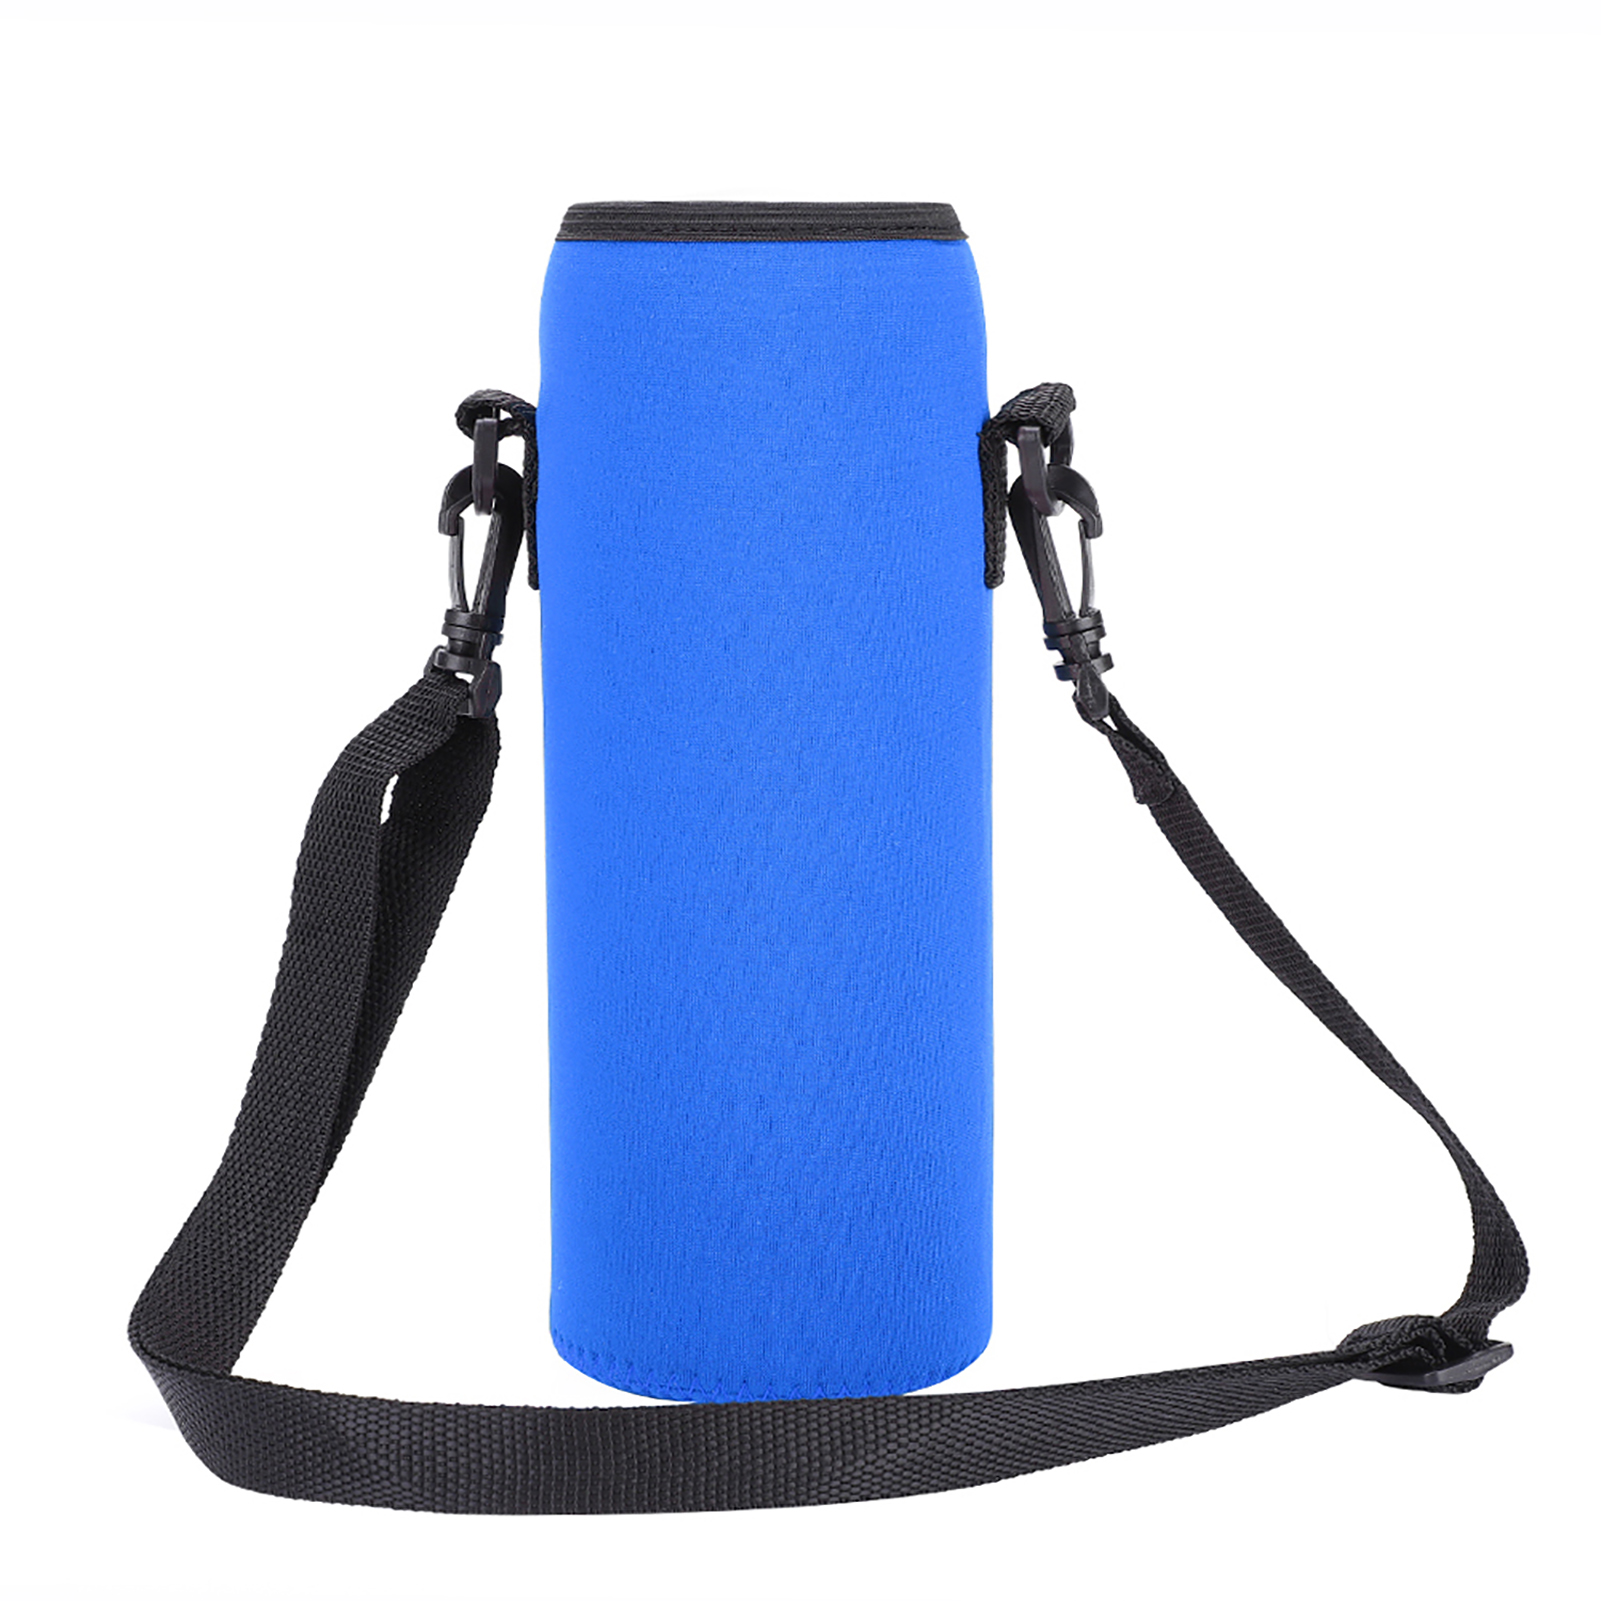 1000ML Water Bottle Carrier Holder Strap Pouch Outdoor Insulated Cover Bag yt